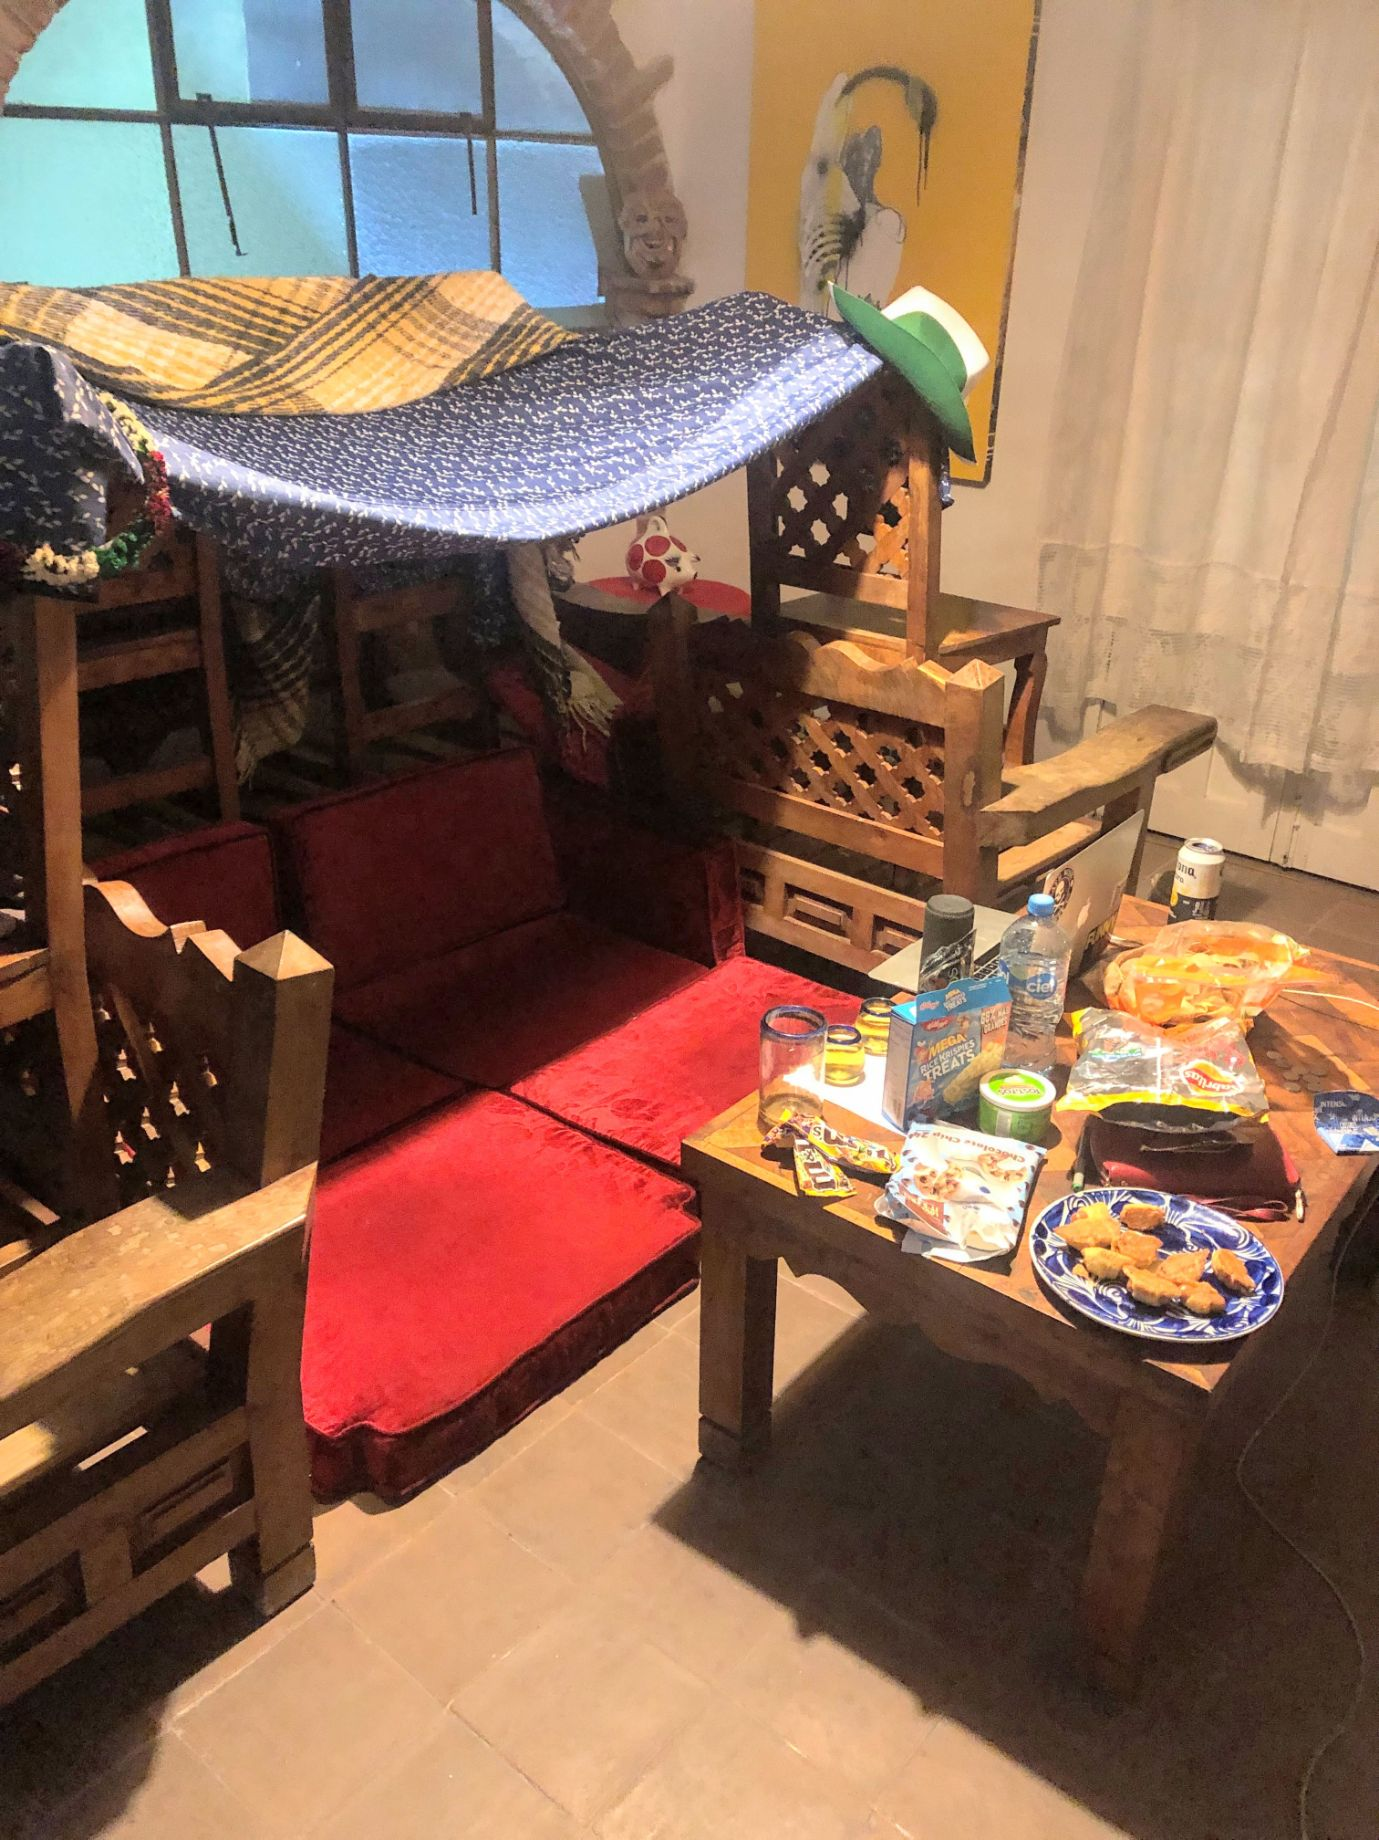 couch fort with snacks in our Airbnb in San Miguel de Allende